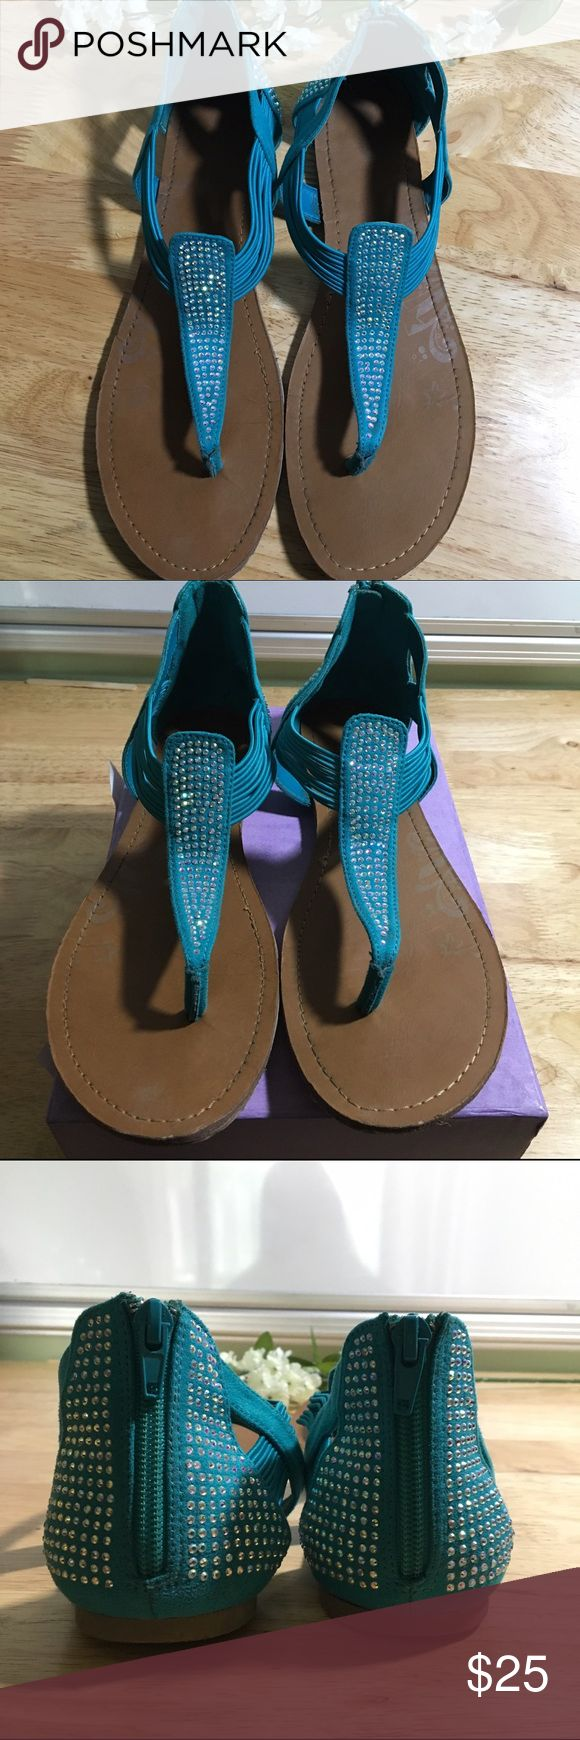 Teal Diamond Sandals Teal sandals with diamond details. Great condition sandals and comfortable fit! If you have any questions please let me know! Shoes Sandals